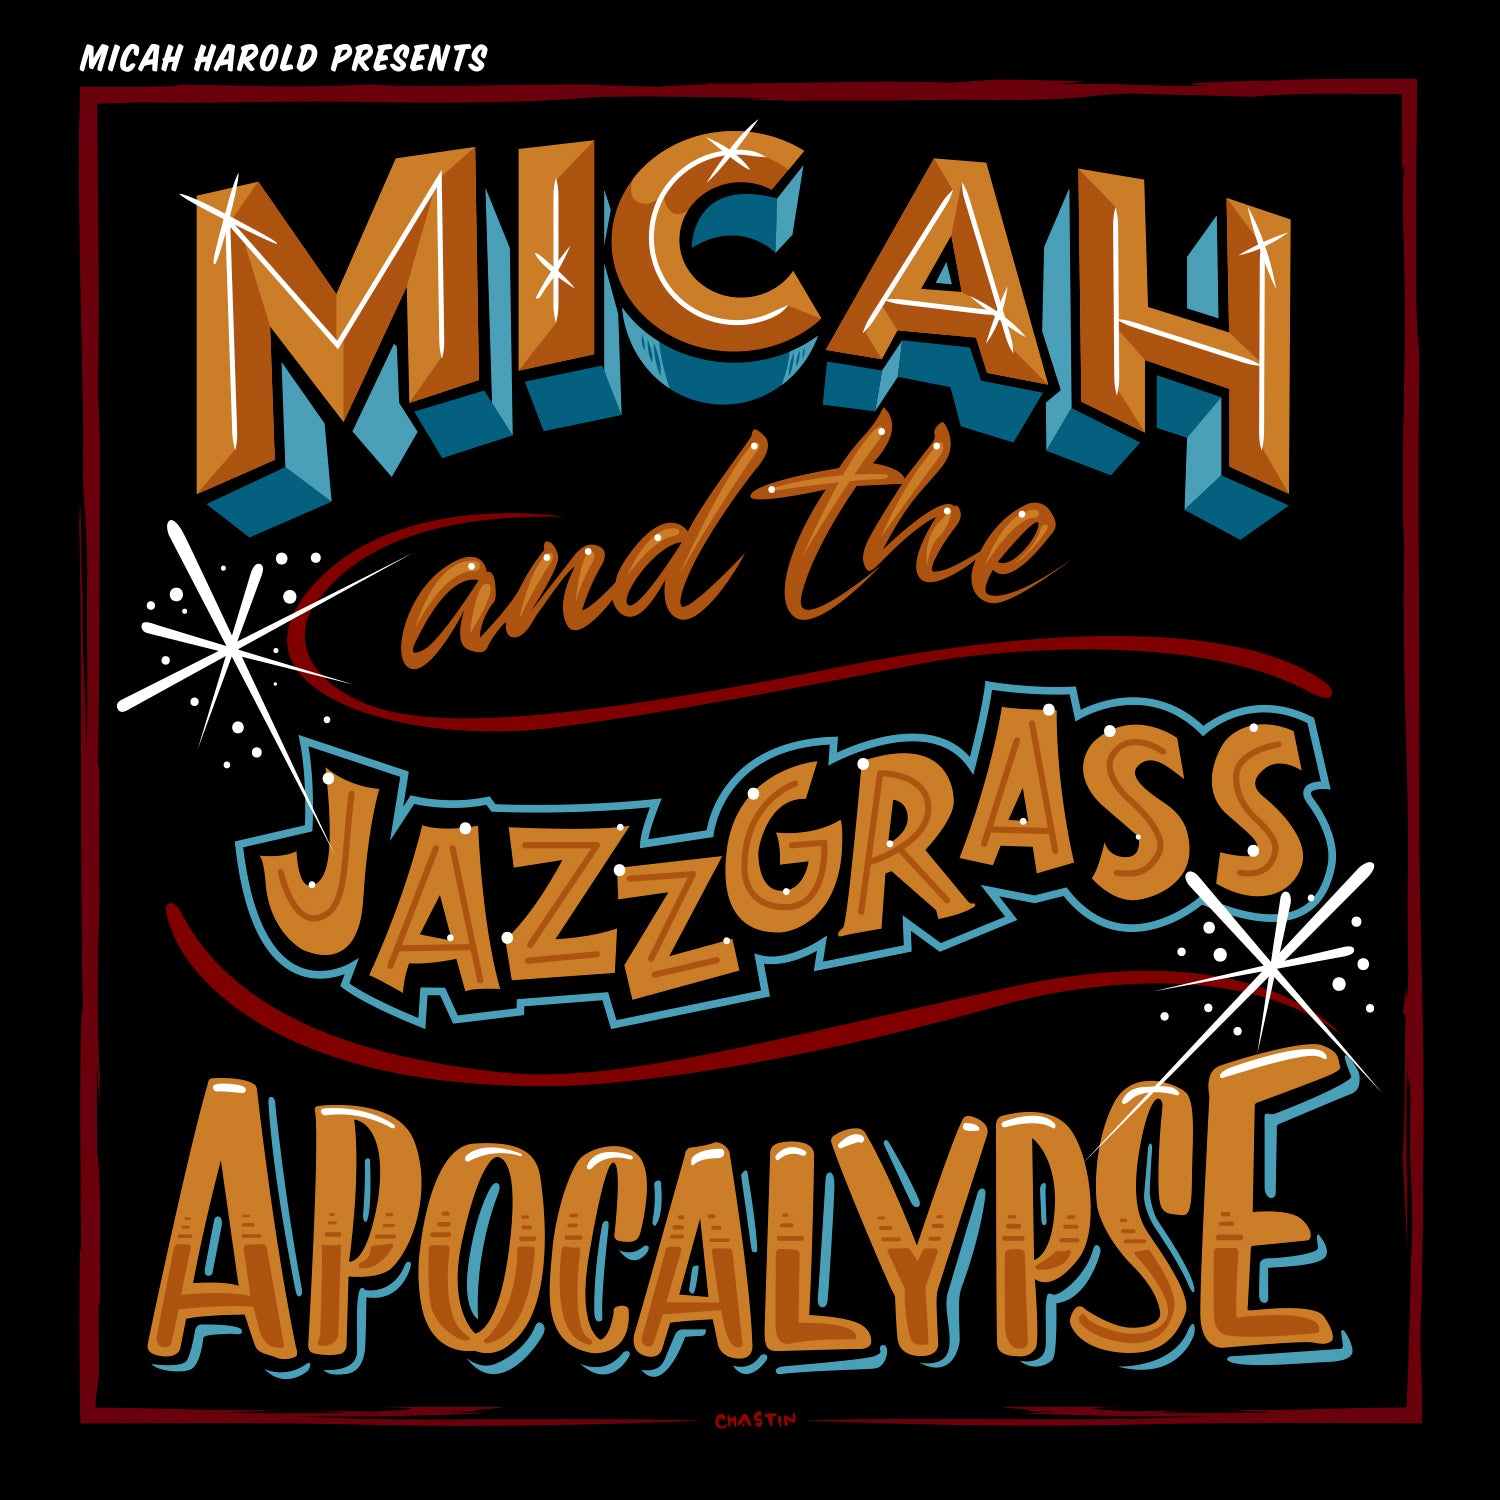 Micah and the JazzGrass Apocalypse - Digital Album